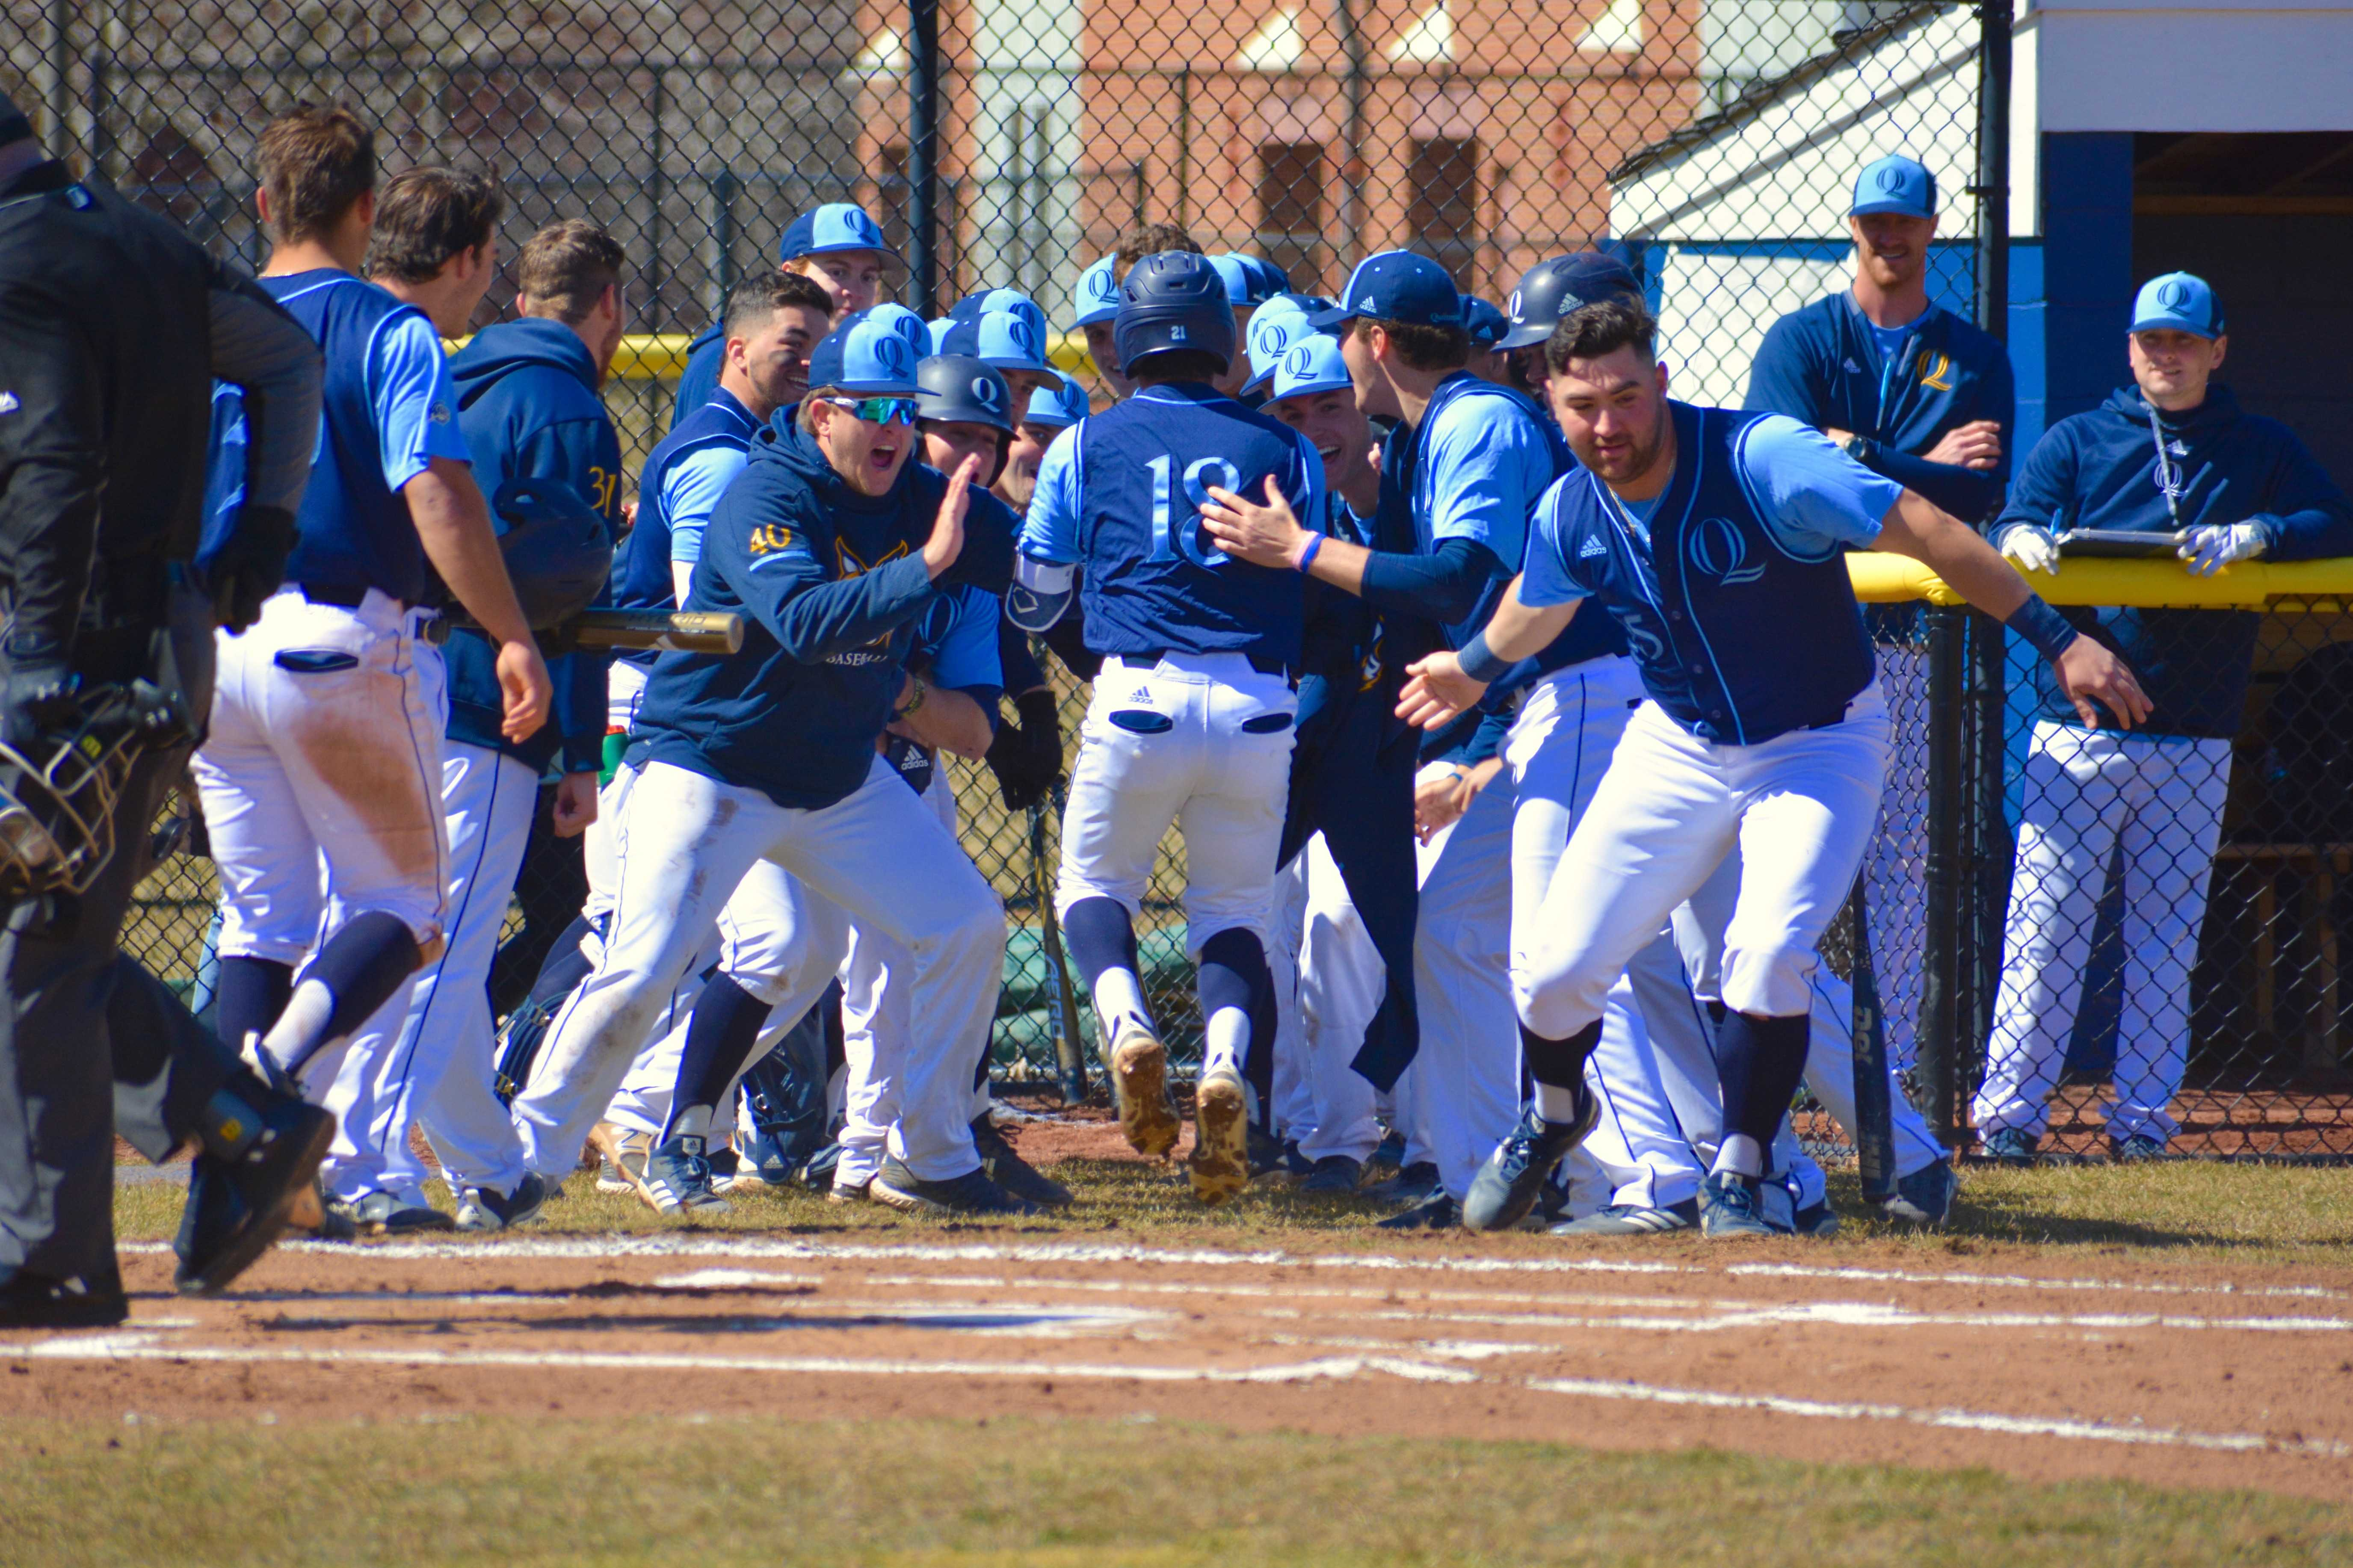 Quinnipiac baseball completes weekend sweep of Saint Peter's to open MAAC play